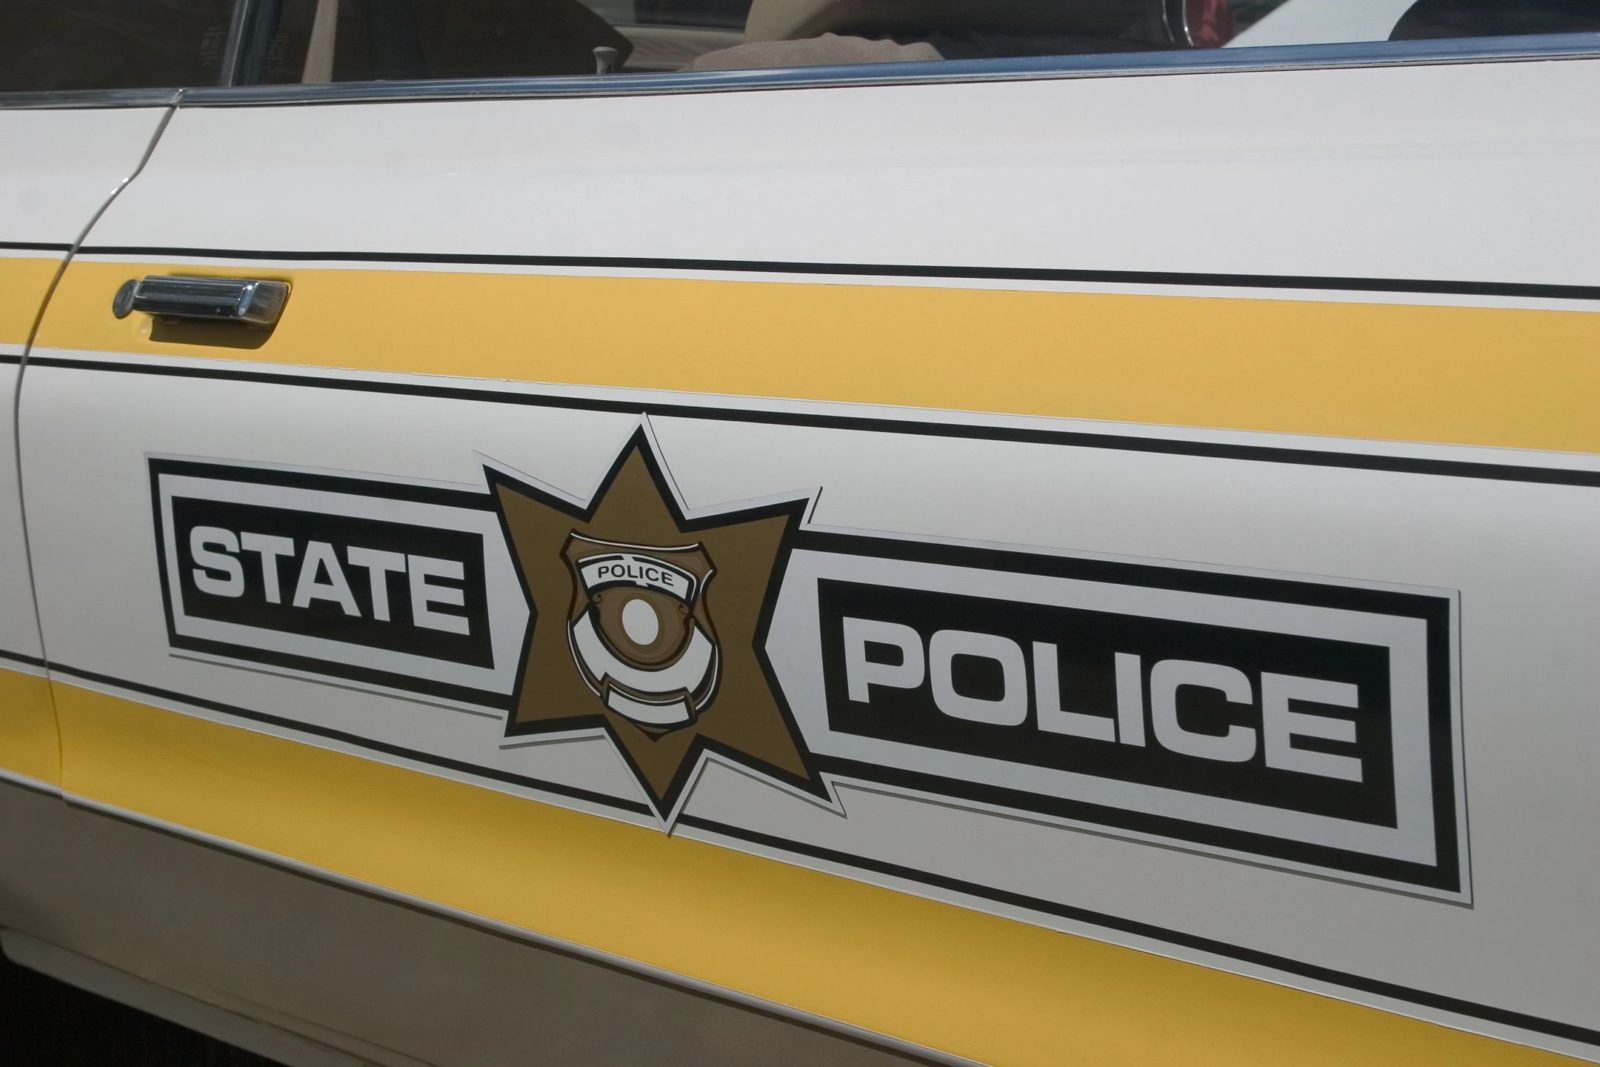 State Police or County Sheriff? Do you need a Drug Charge Defense Attorney? - If you have been arrested for a crime we can help defend your case.